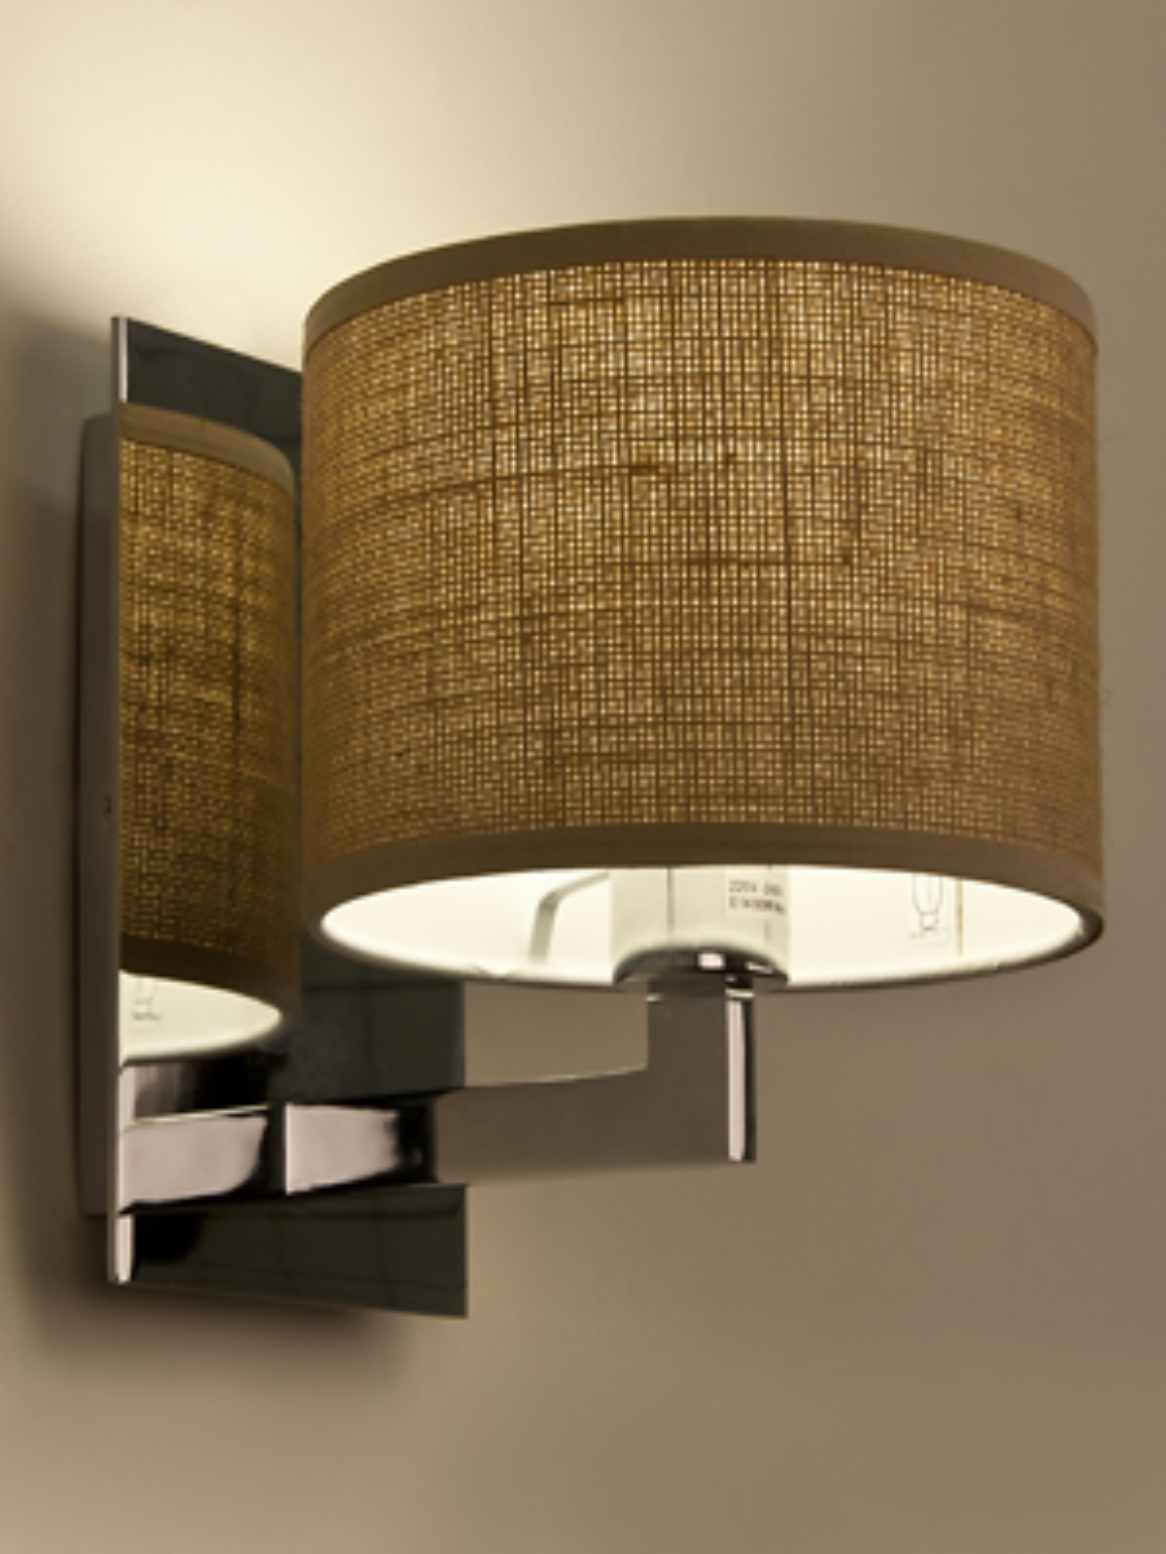 Wall Light Lamp Shades Fabric : Fabric wall light shades - upgrade your interior design on a small budget Warisan Lighting